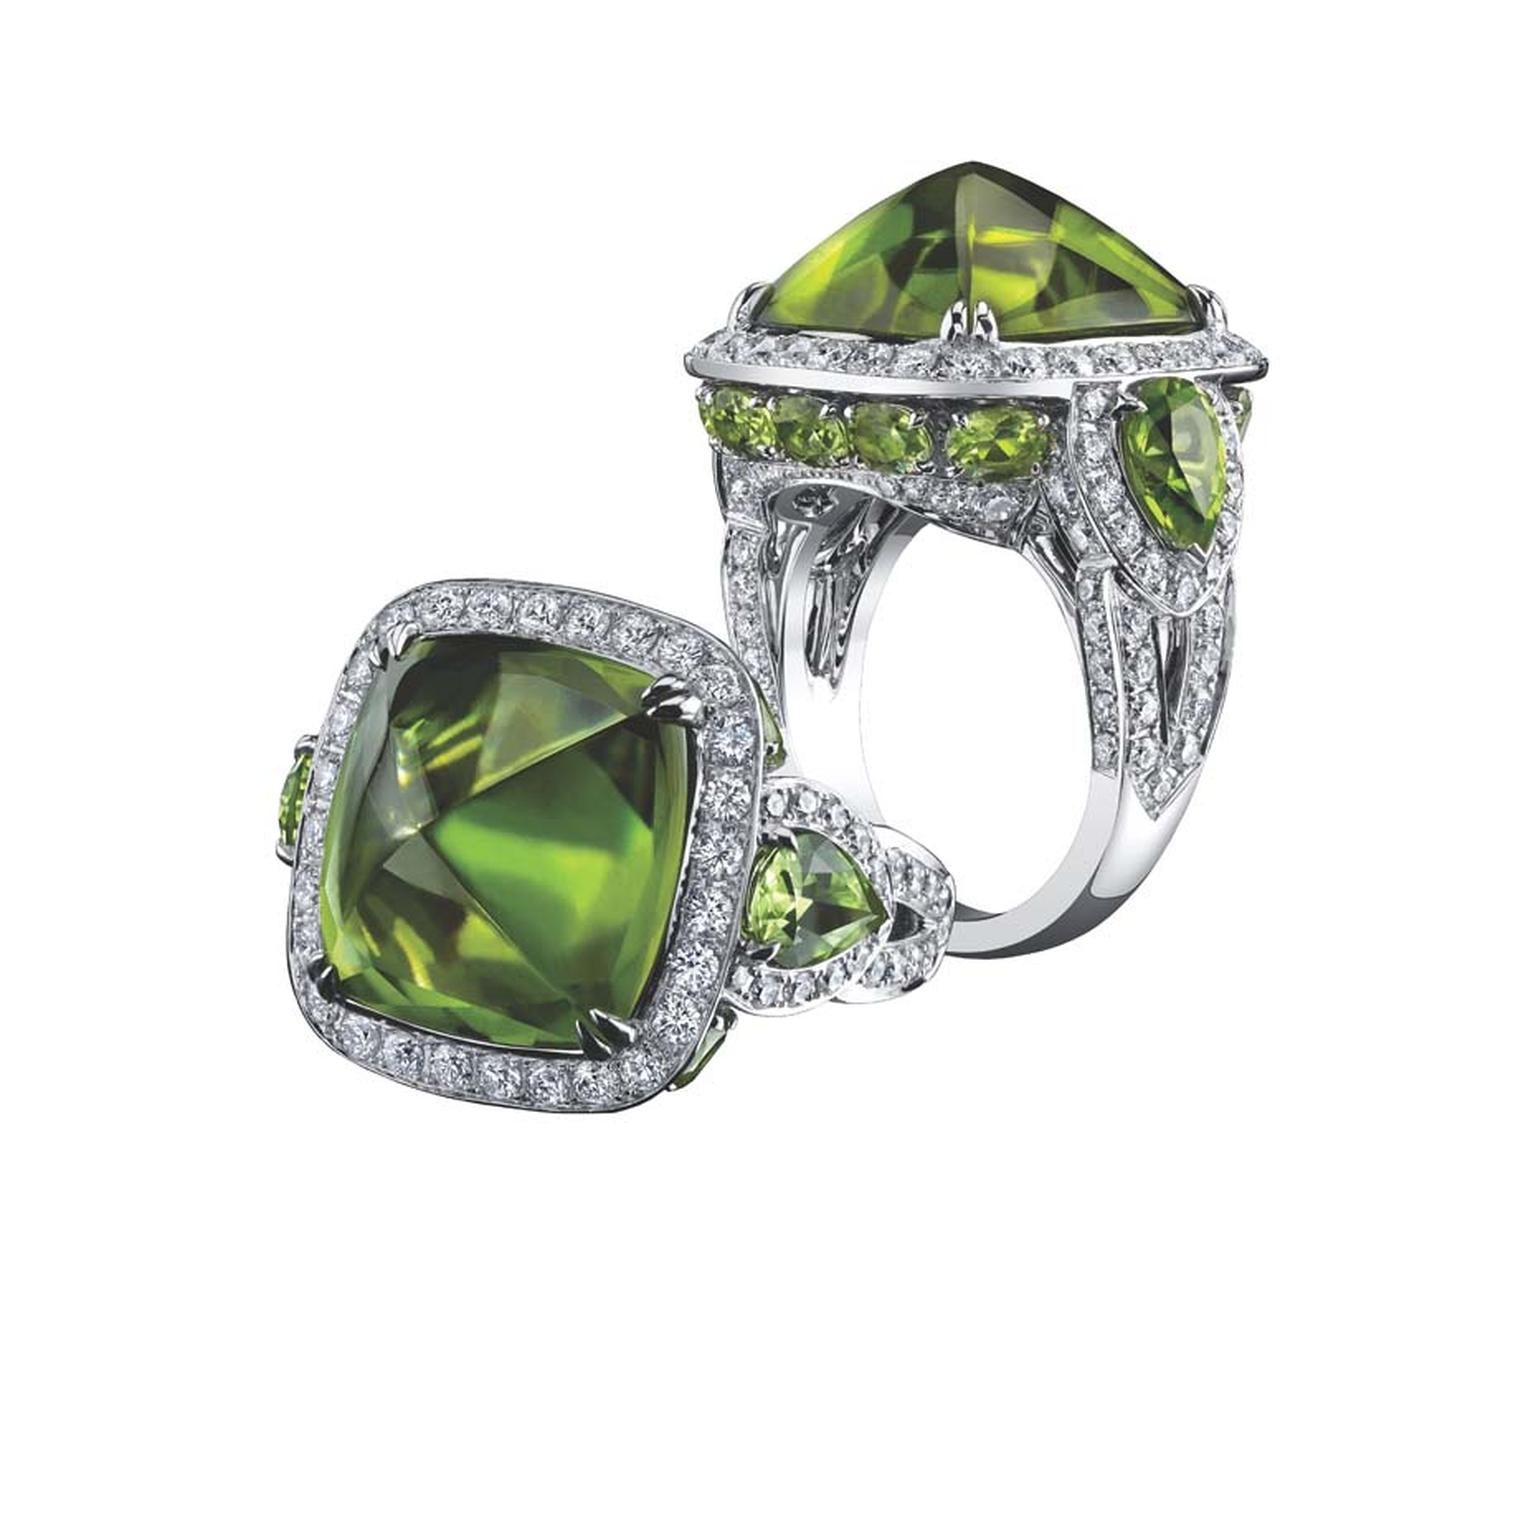 Robert Procop ring in white gold, from the Legacy Brooke collection, set with a 17.00ct sugarloaf peridot and diamonds ($24,000).